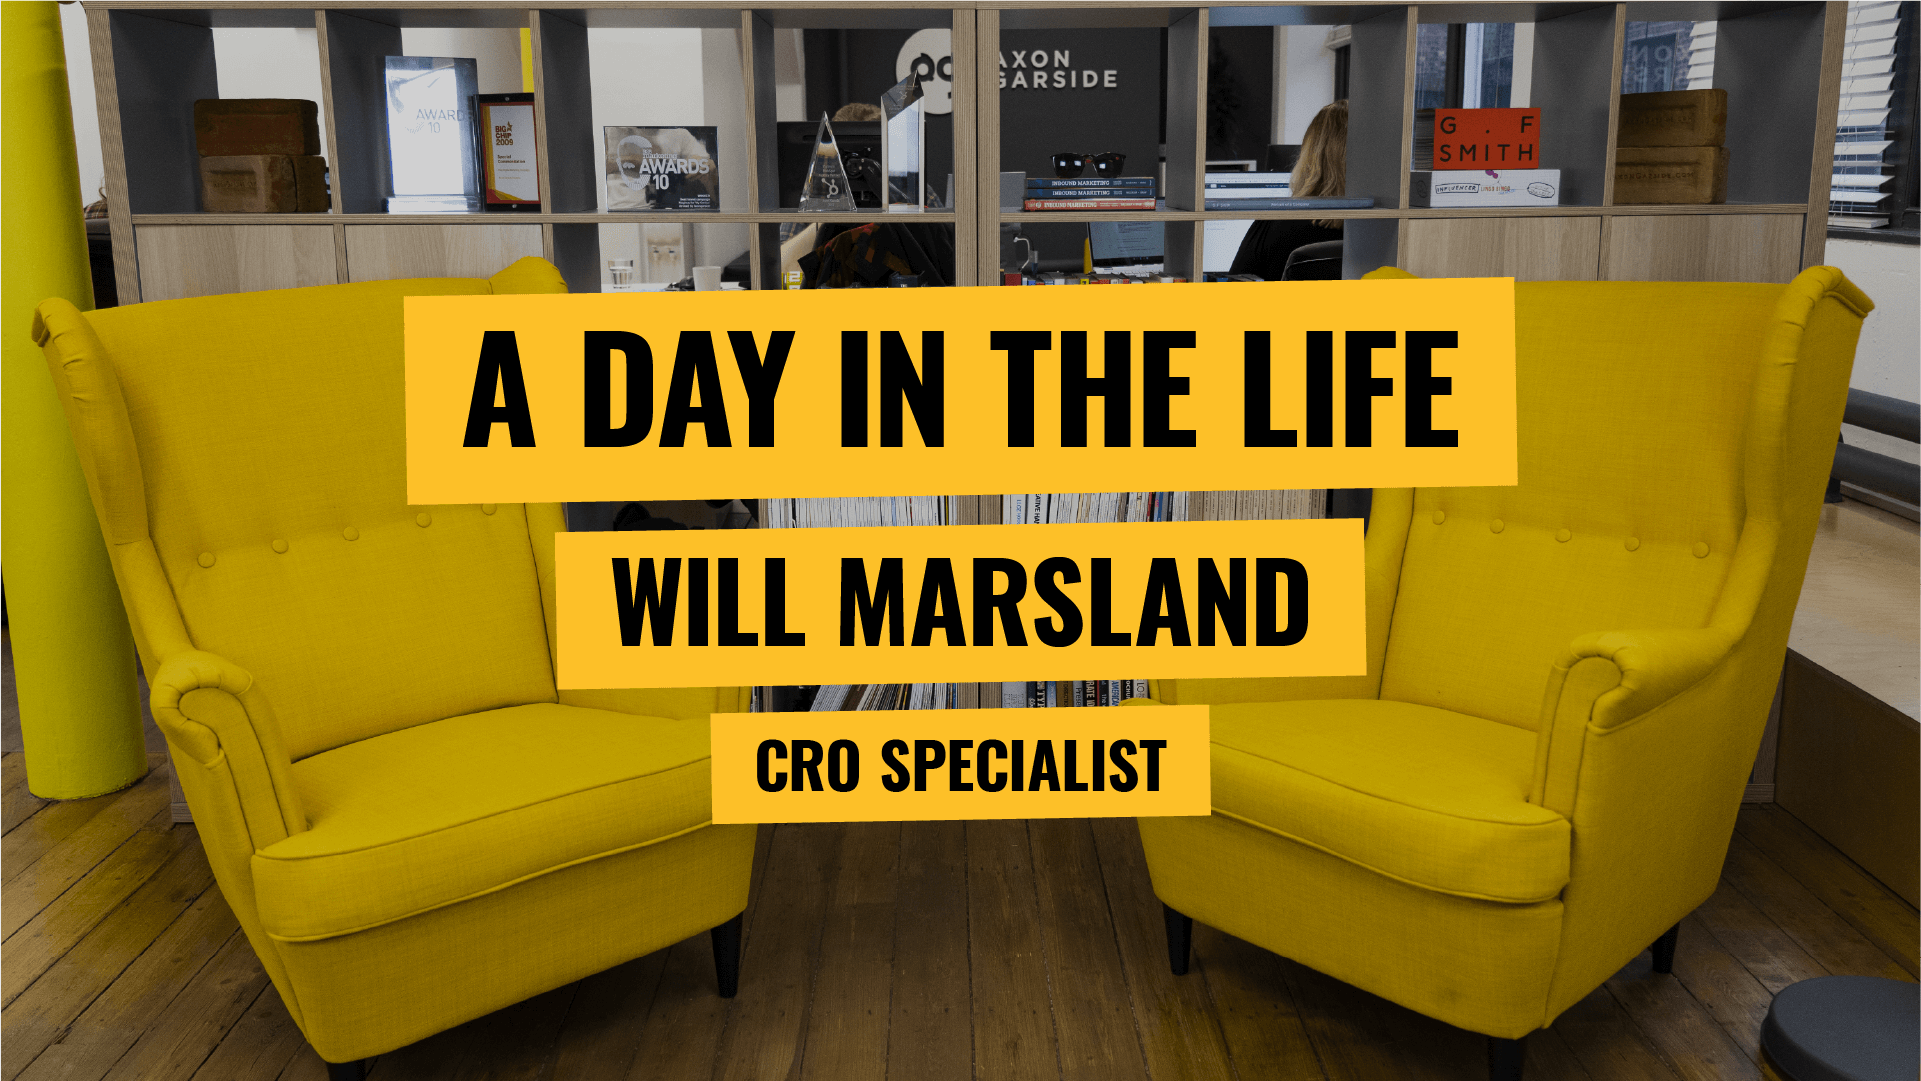 [Video] A day in the life - CRO Specialist - Will Marsland